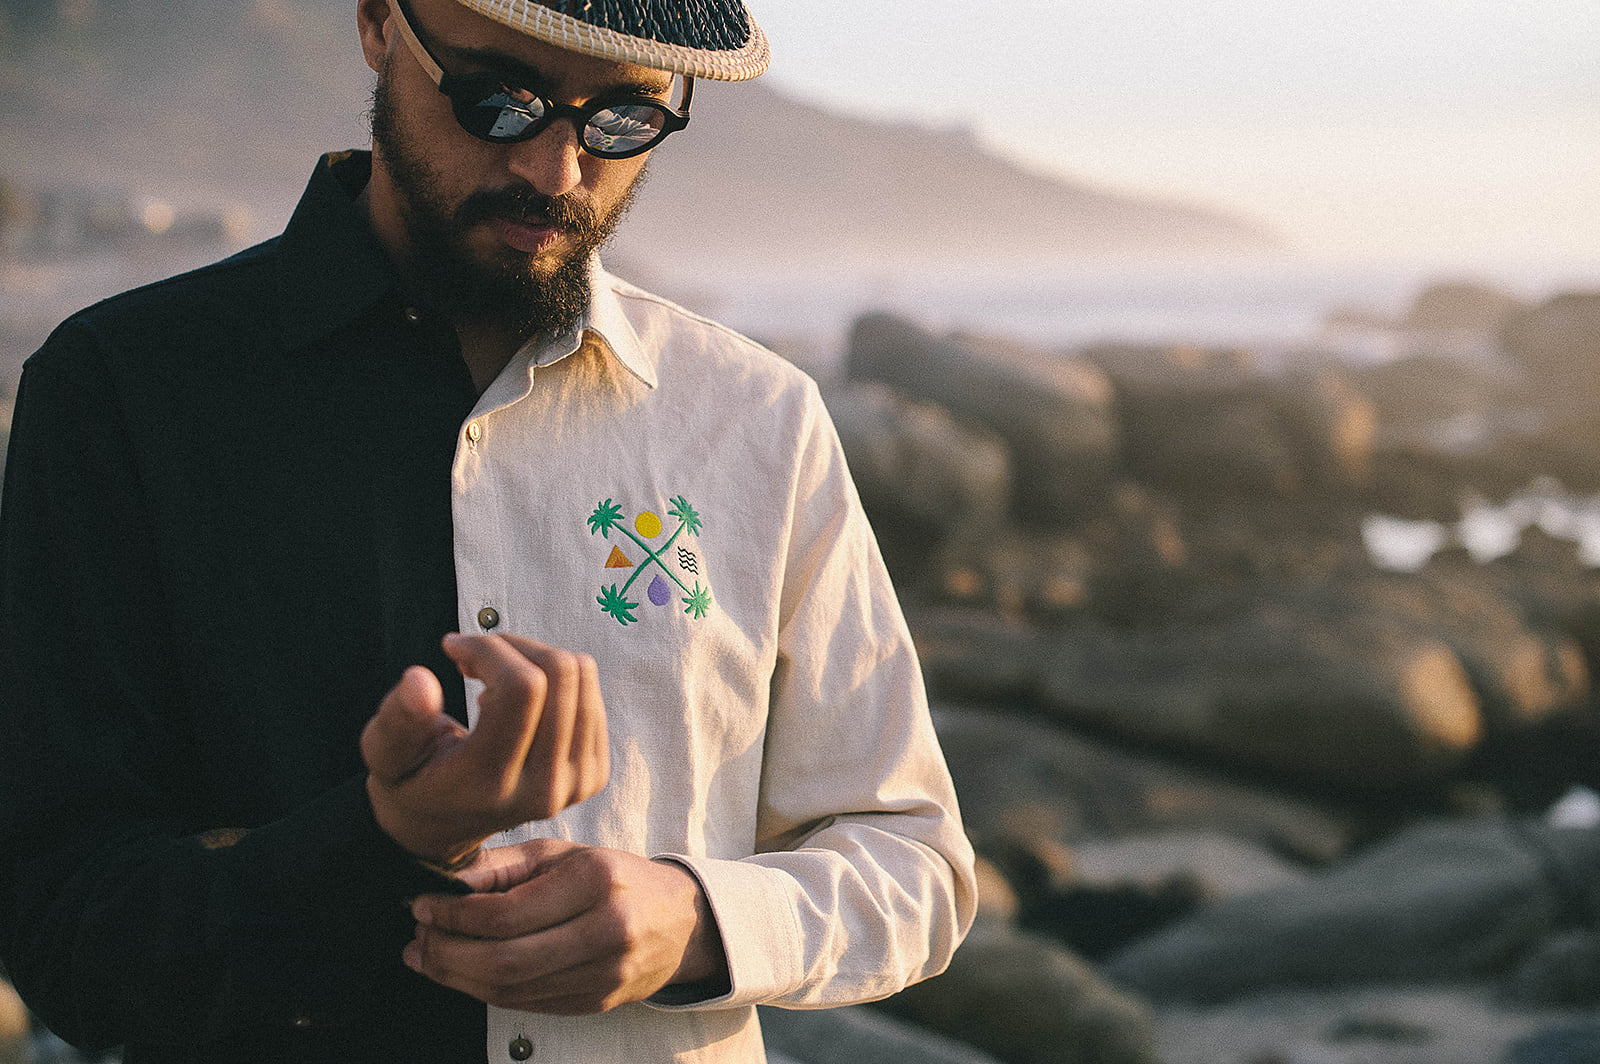 The Ballo Beach Club Hemp Rugby jersey capsule drop at Rowing Blazers NYC